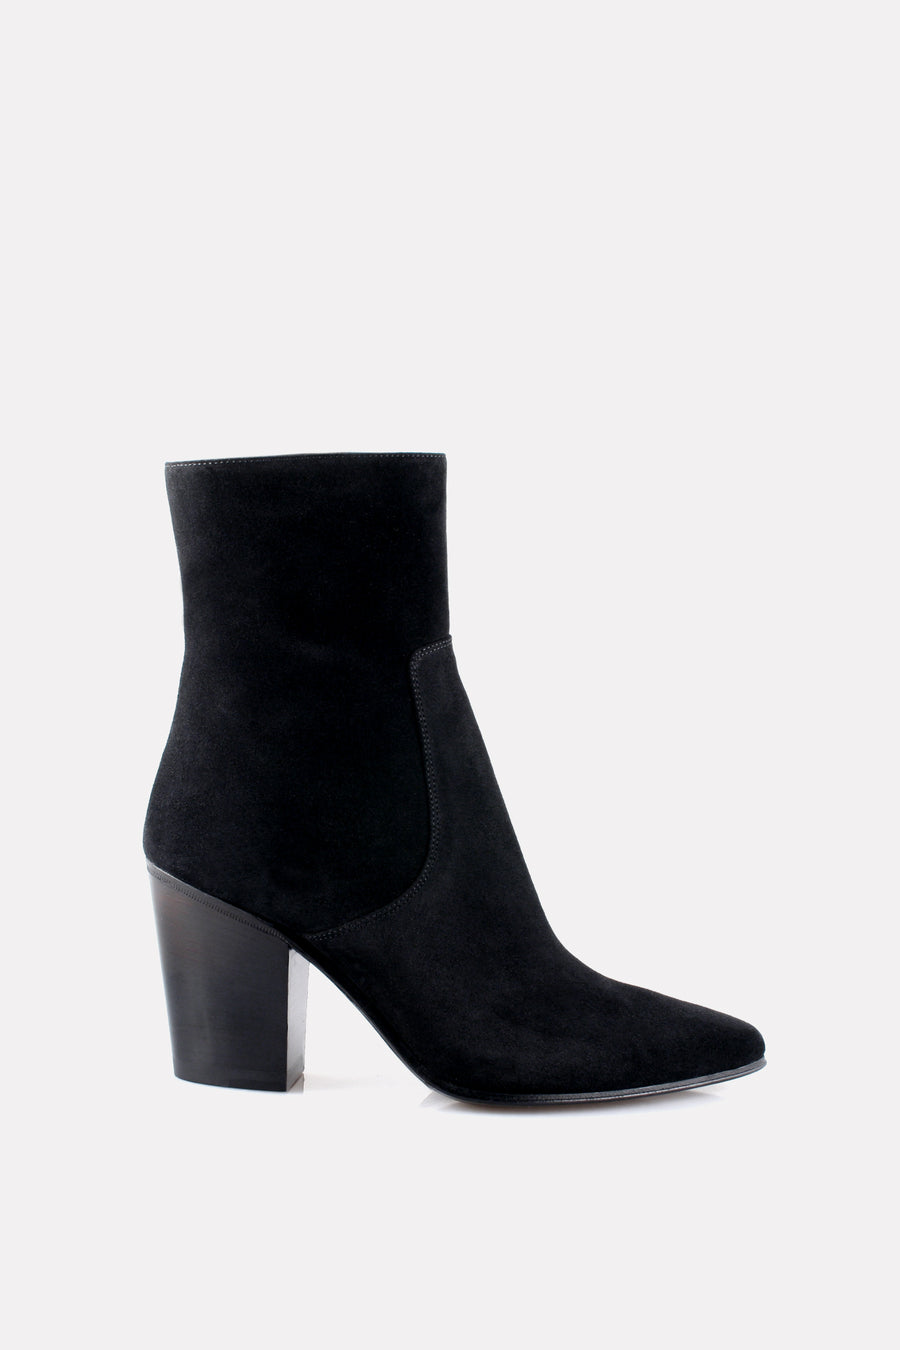 Point Toe Boot Black Suede.